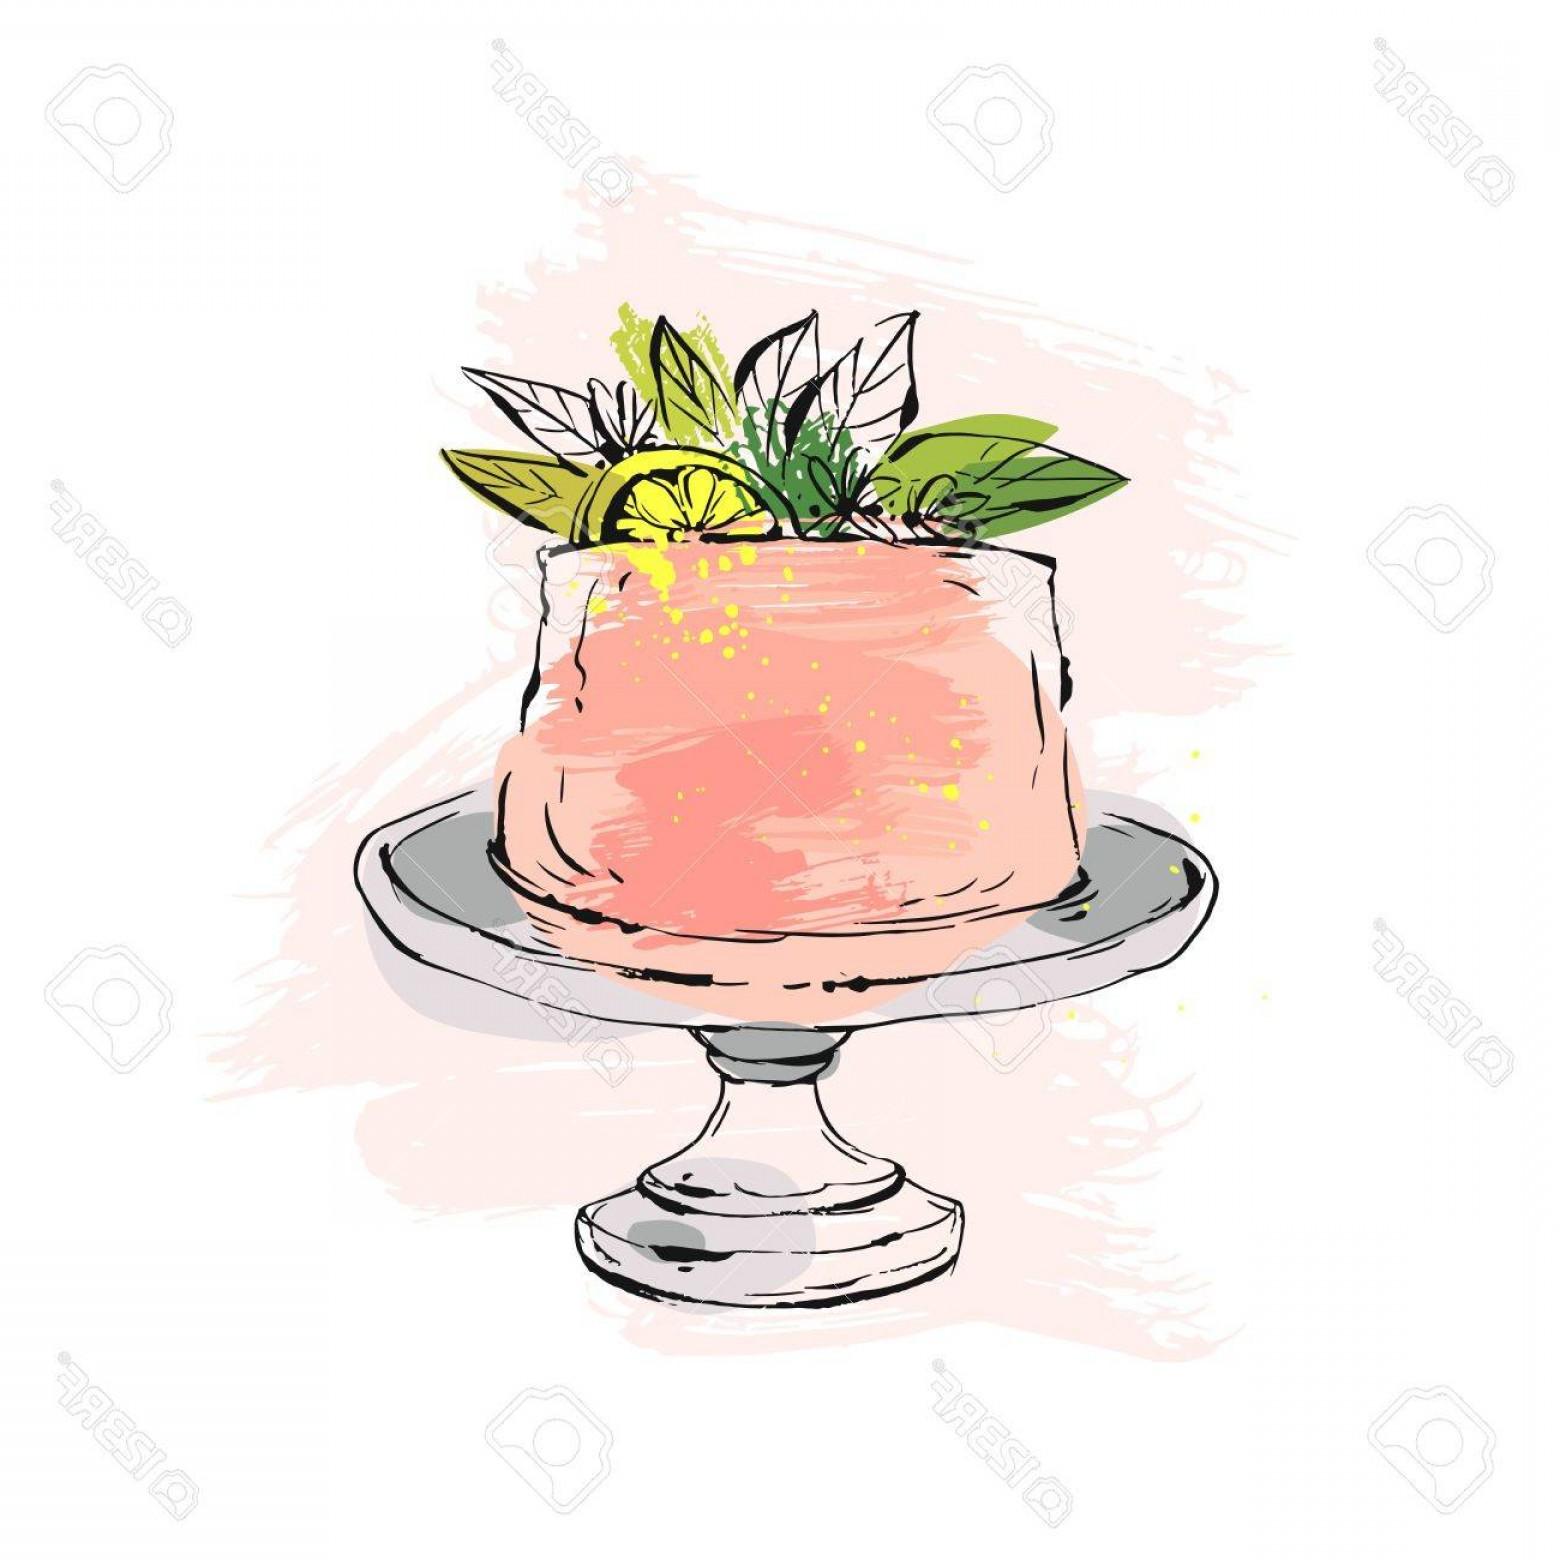 Cake Stand Vector: Photostock Vector Hand Drawn Vector Abstract Watercolor Textured Cake On Cake Stand With Lemon Flowers And Leaves In P